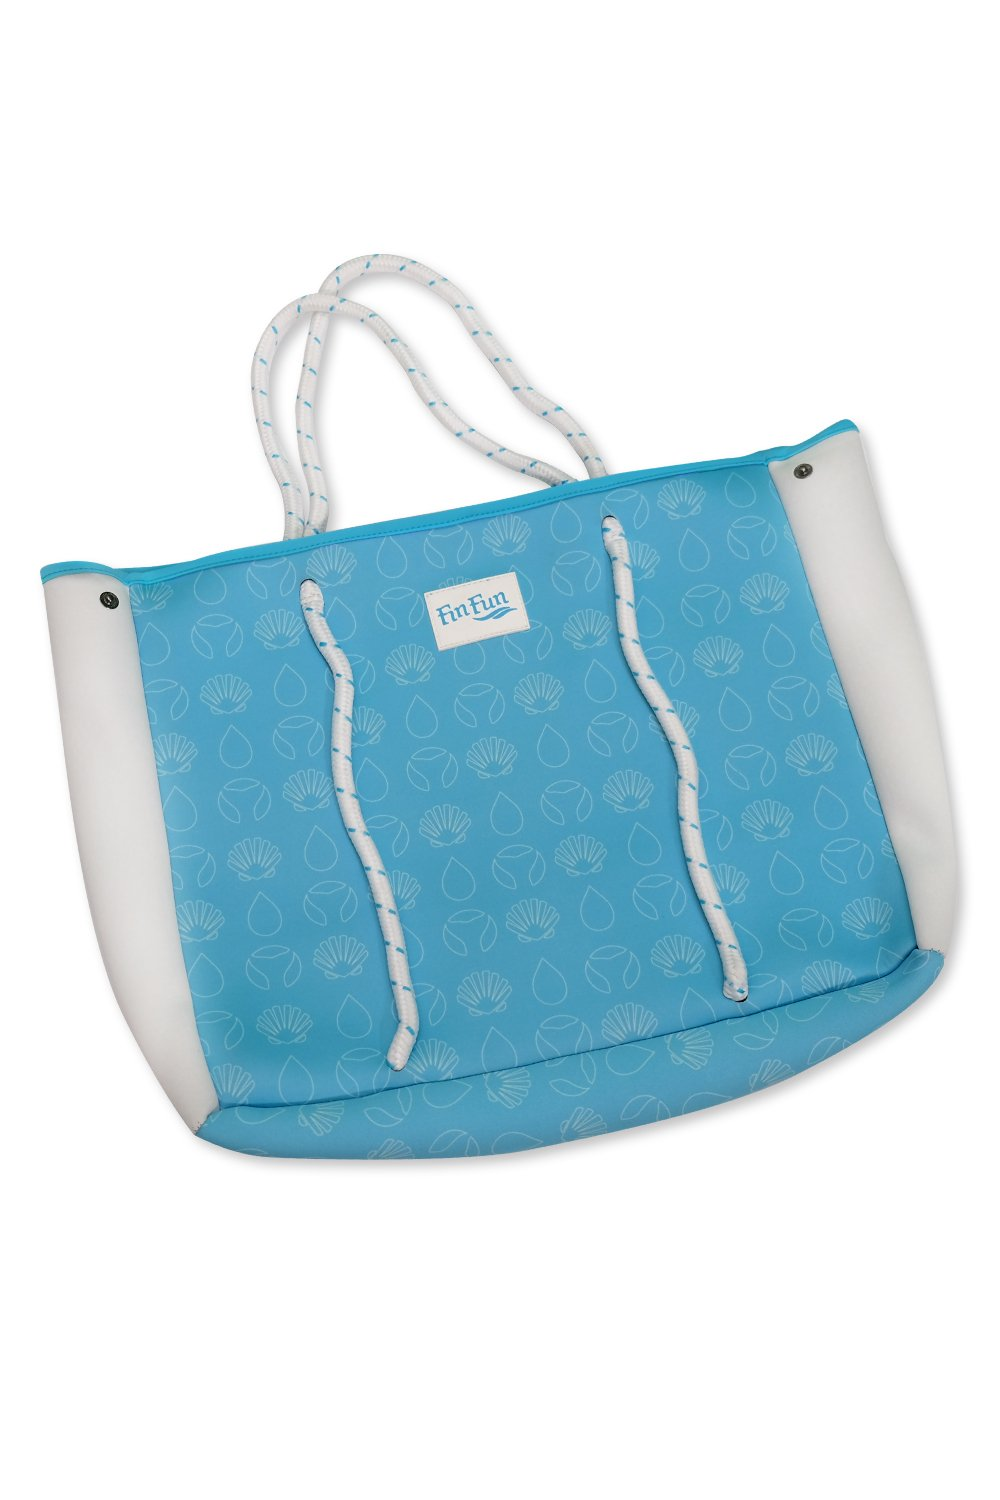 Fin Fun Mermaid Blue Neoprene Tote Bag- Monofin NOT Included